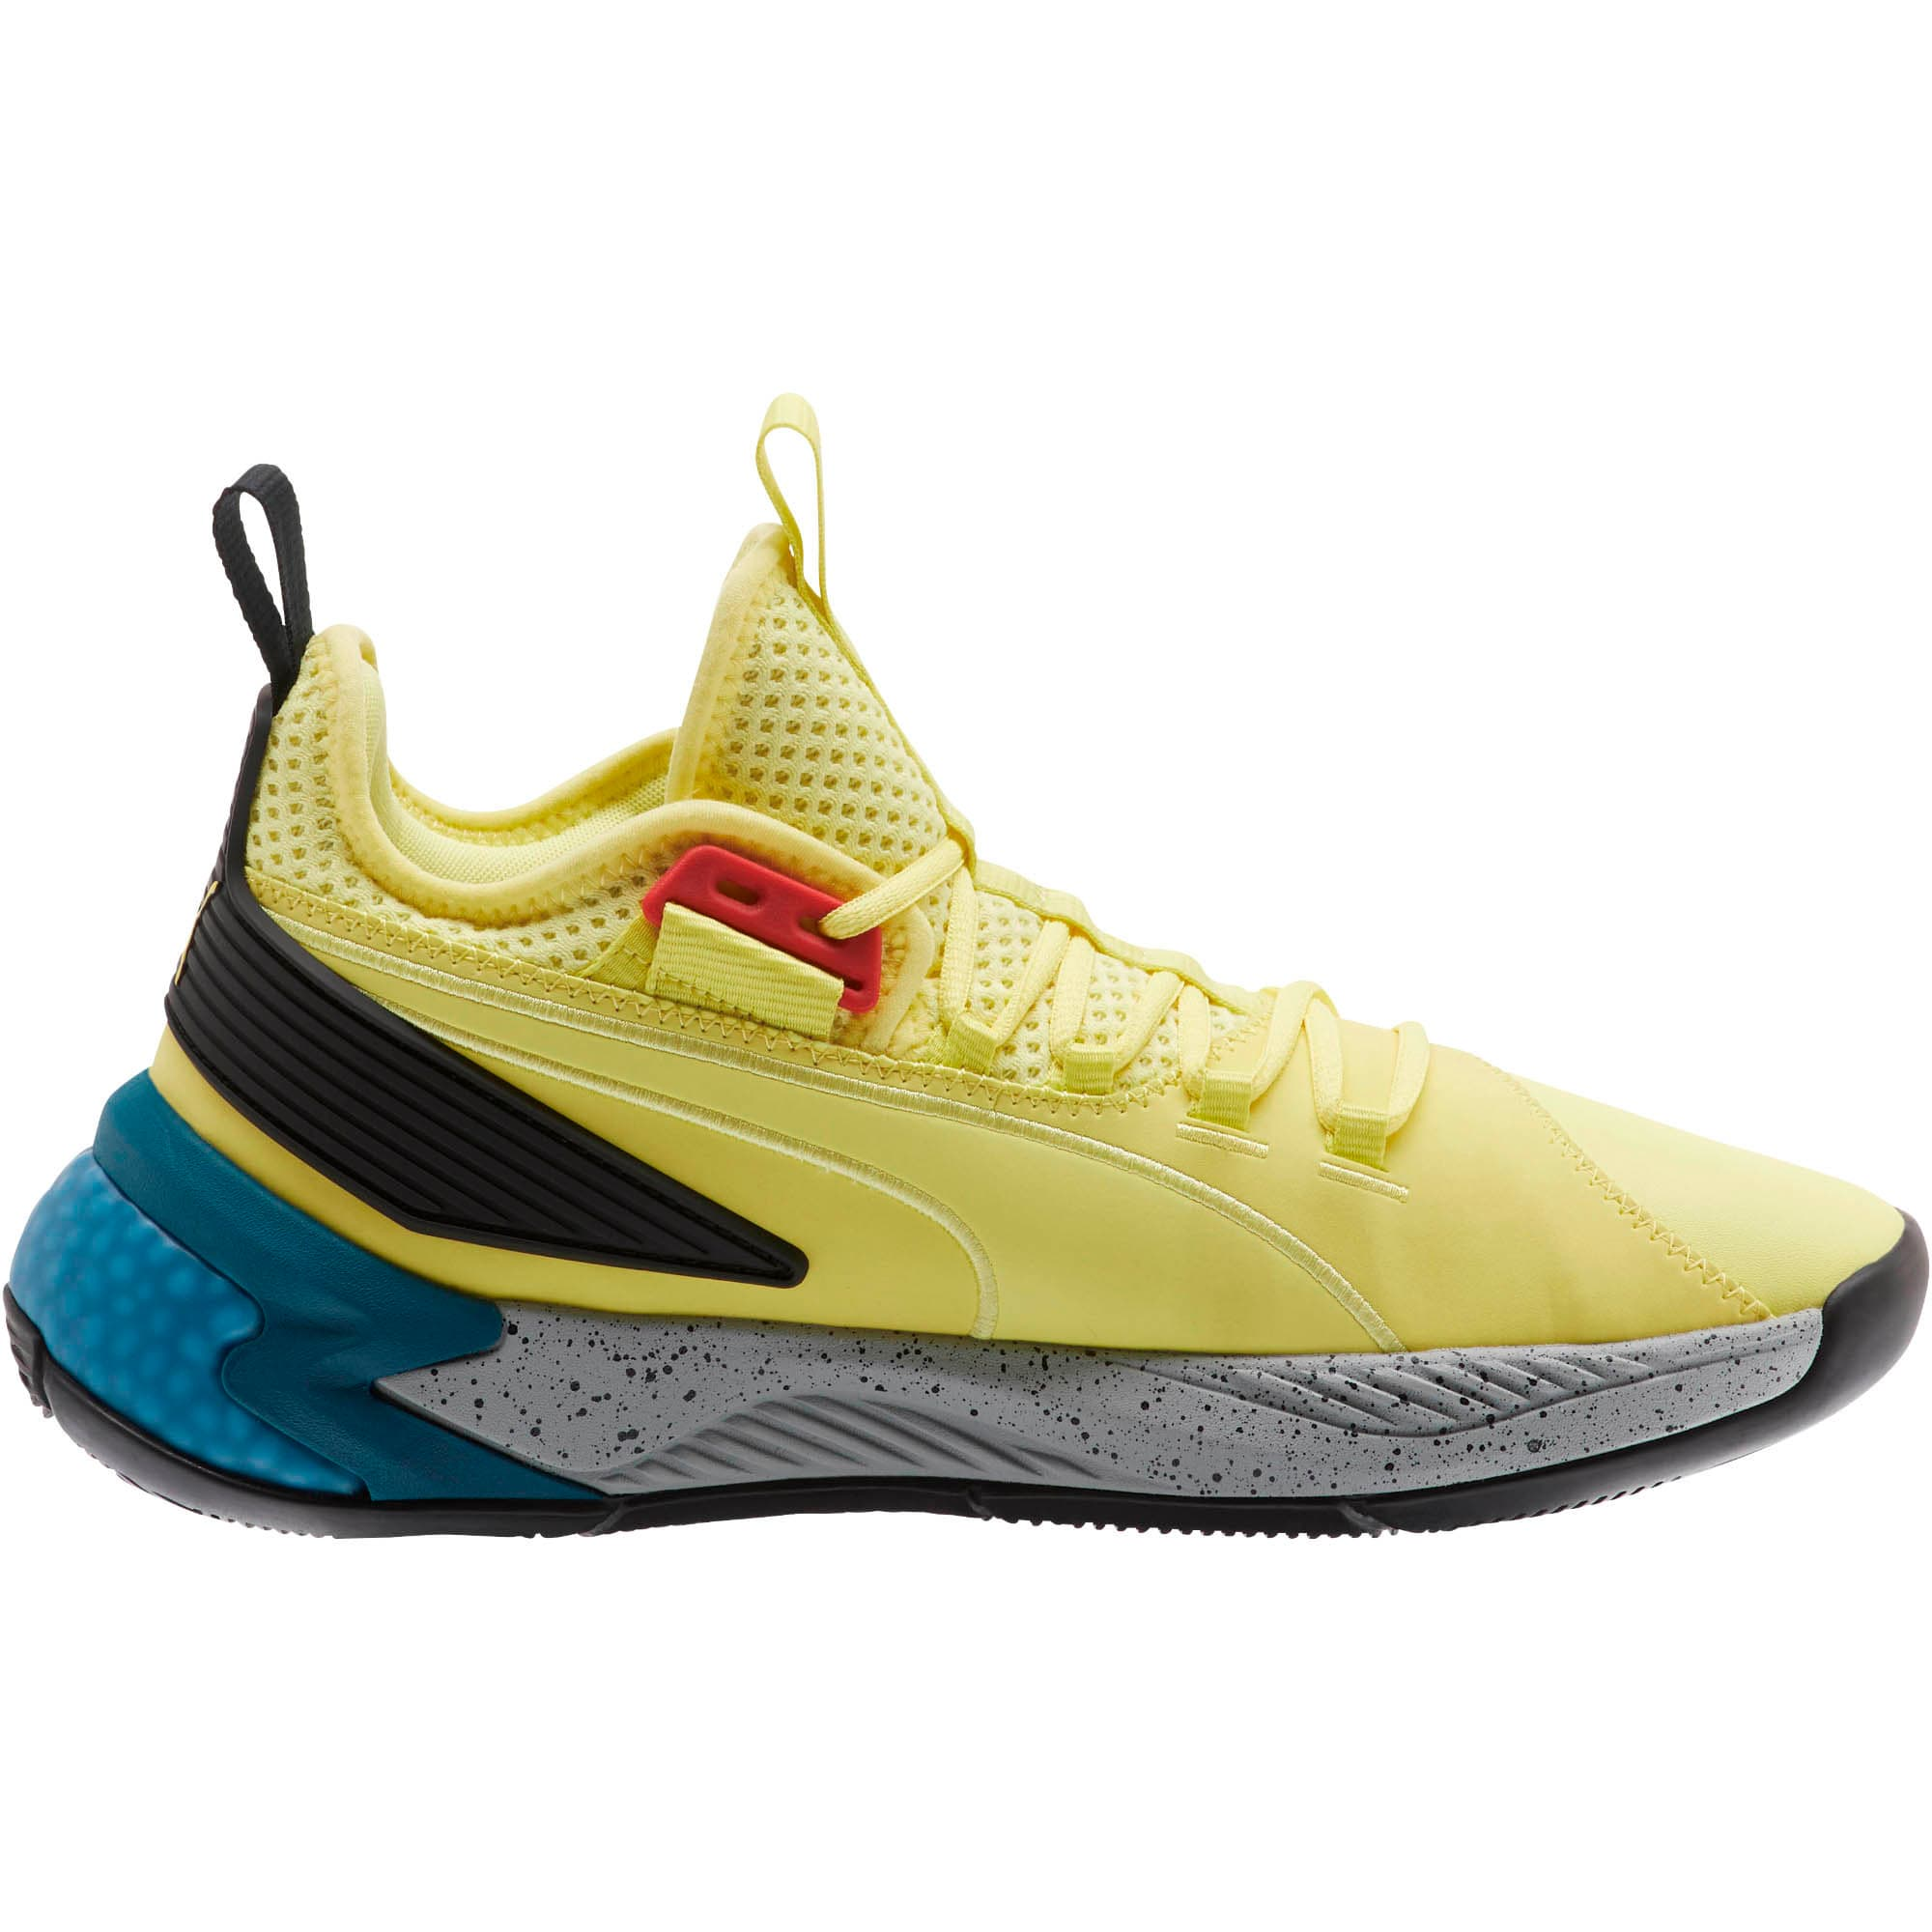 Thumbnail 4 van Uproar Spectra basketbalschoenen, Limelight-zwart-wit, medium